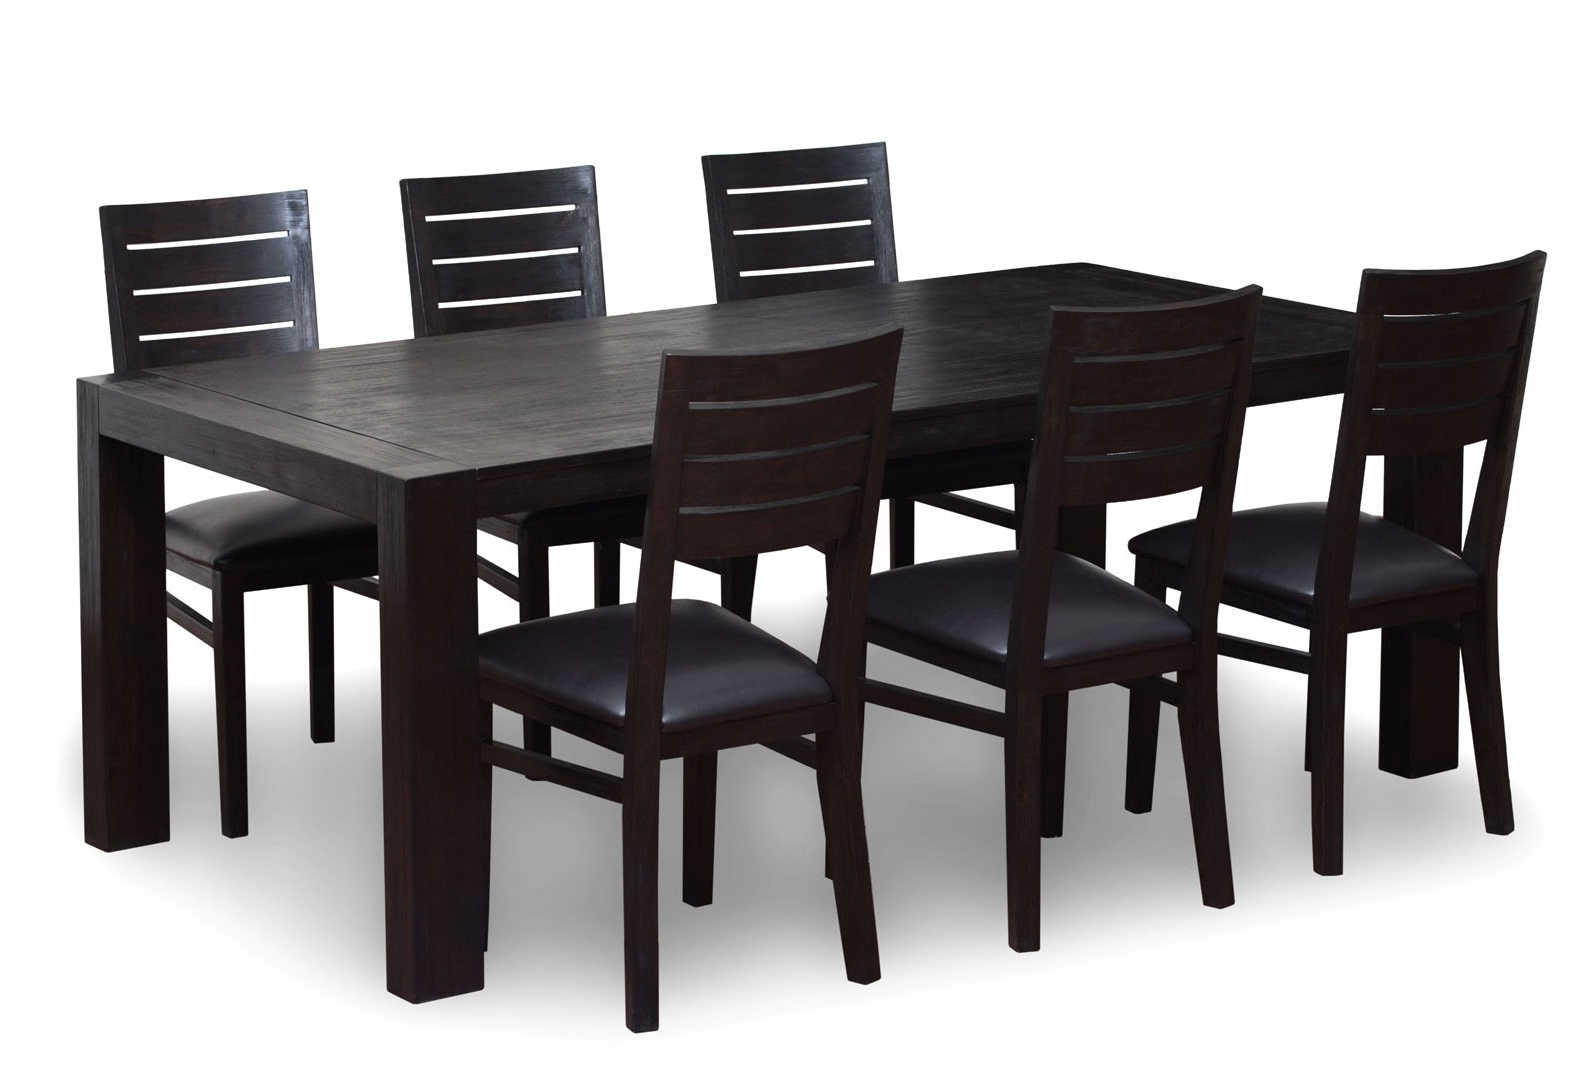 Widely Used 6 Seat Dining Tables And Chairs Regarding 6 Seater Wooden Dining Table Set – Antique Ebony (View 25 of 25)